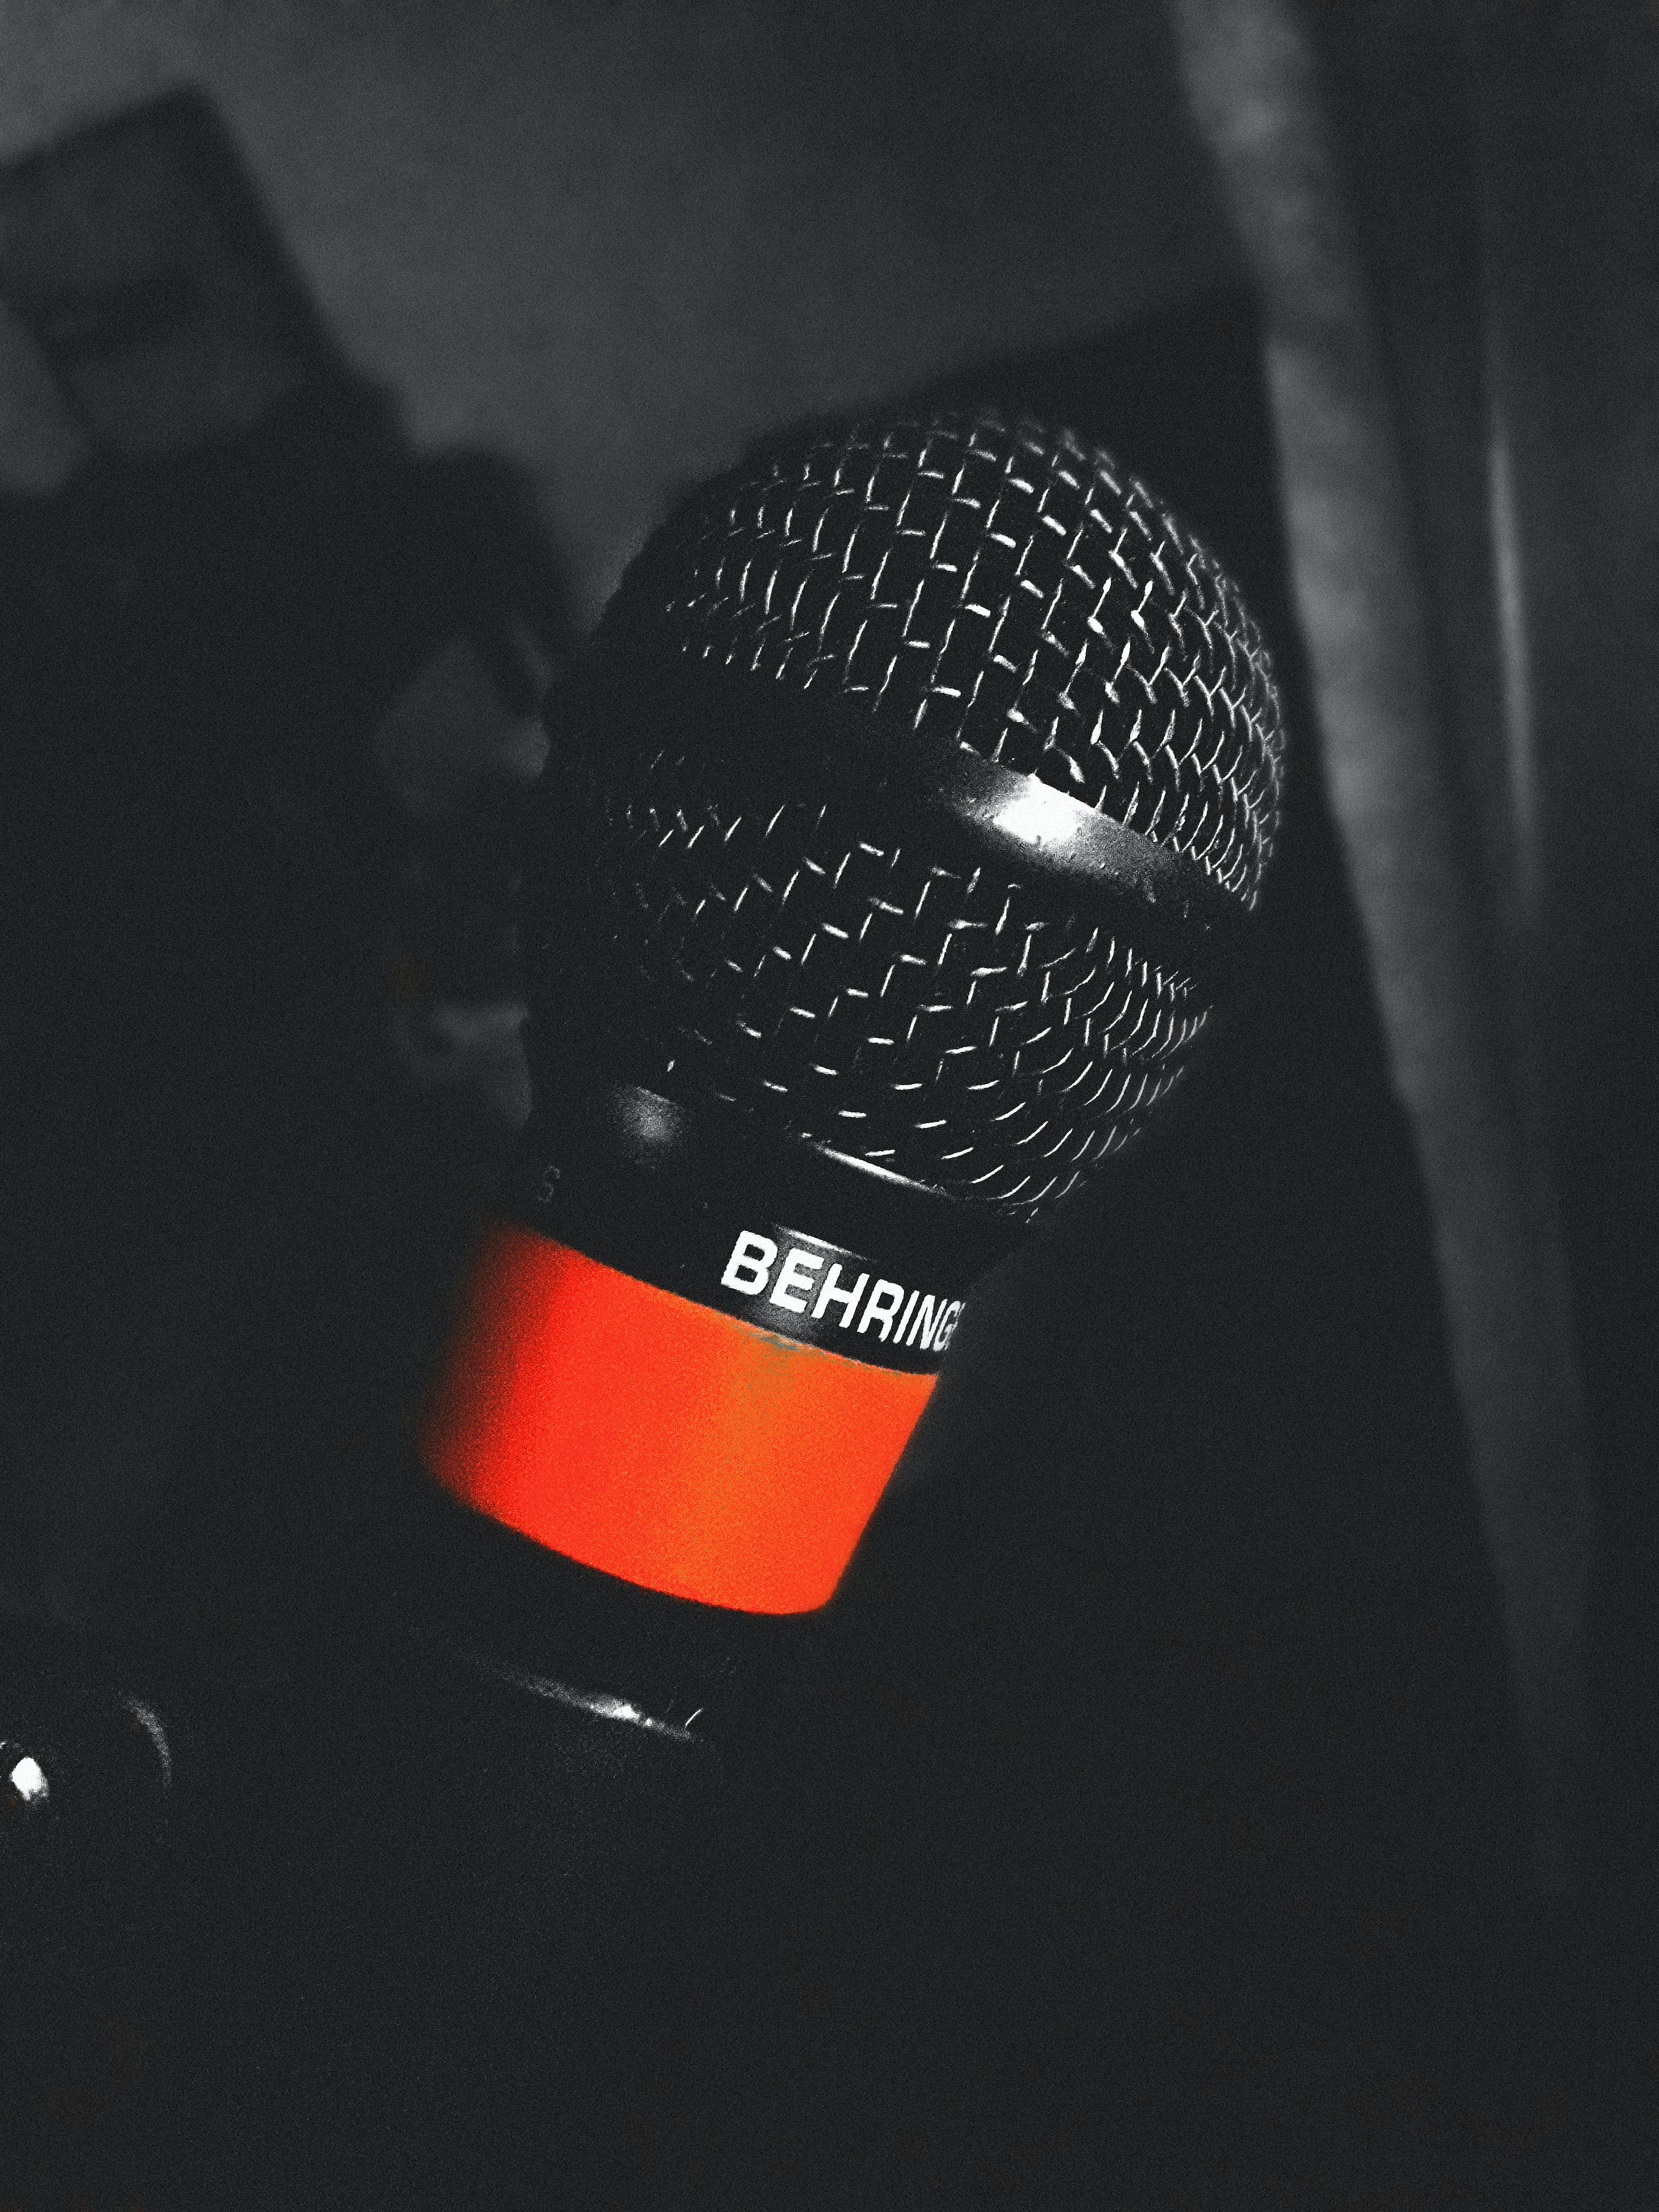 Free stock photo of behringer microphone